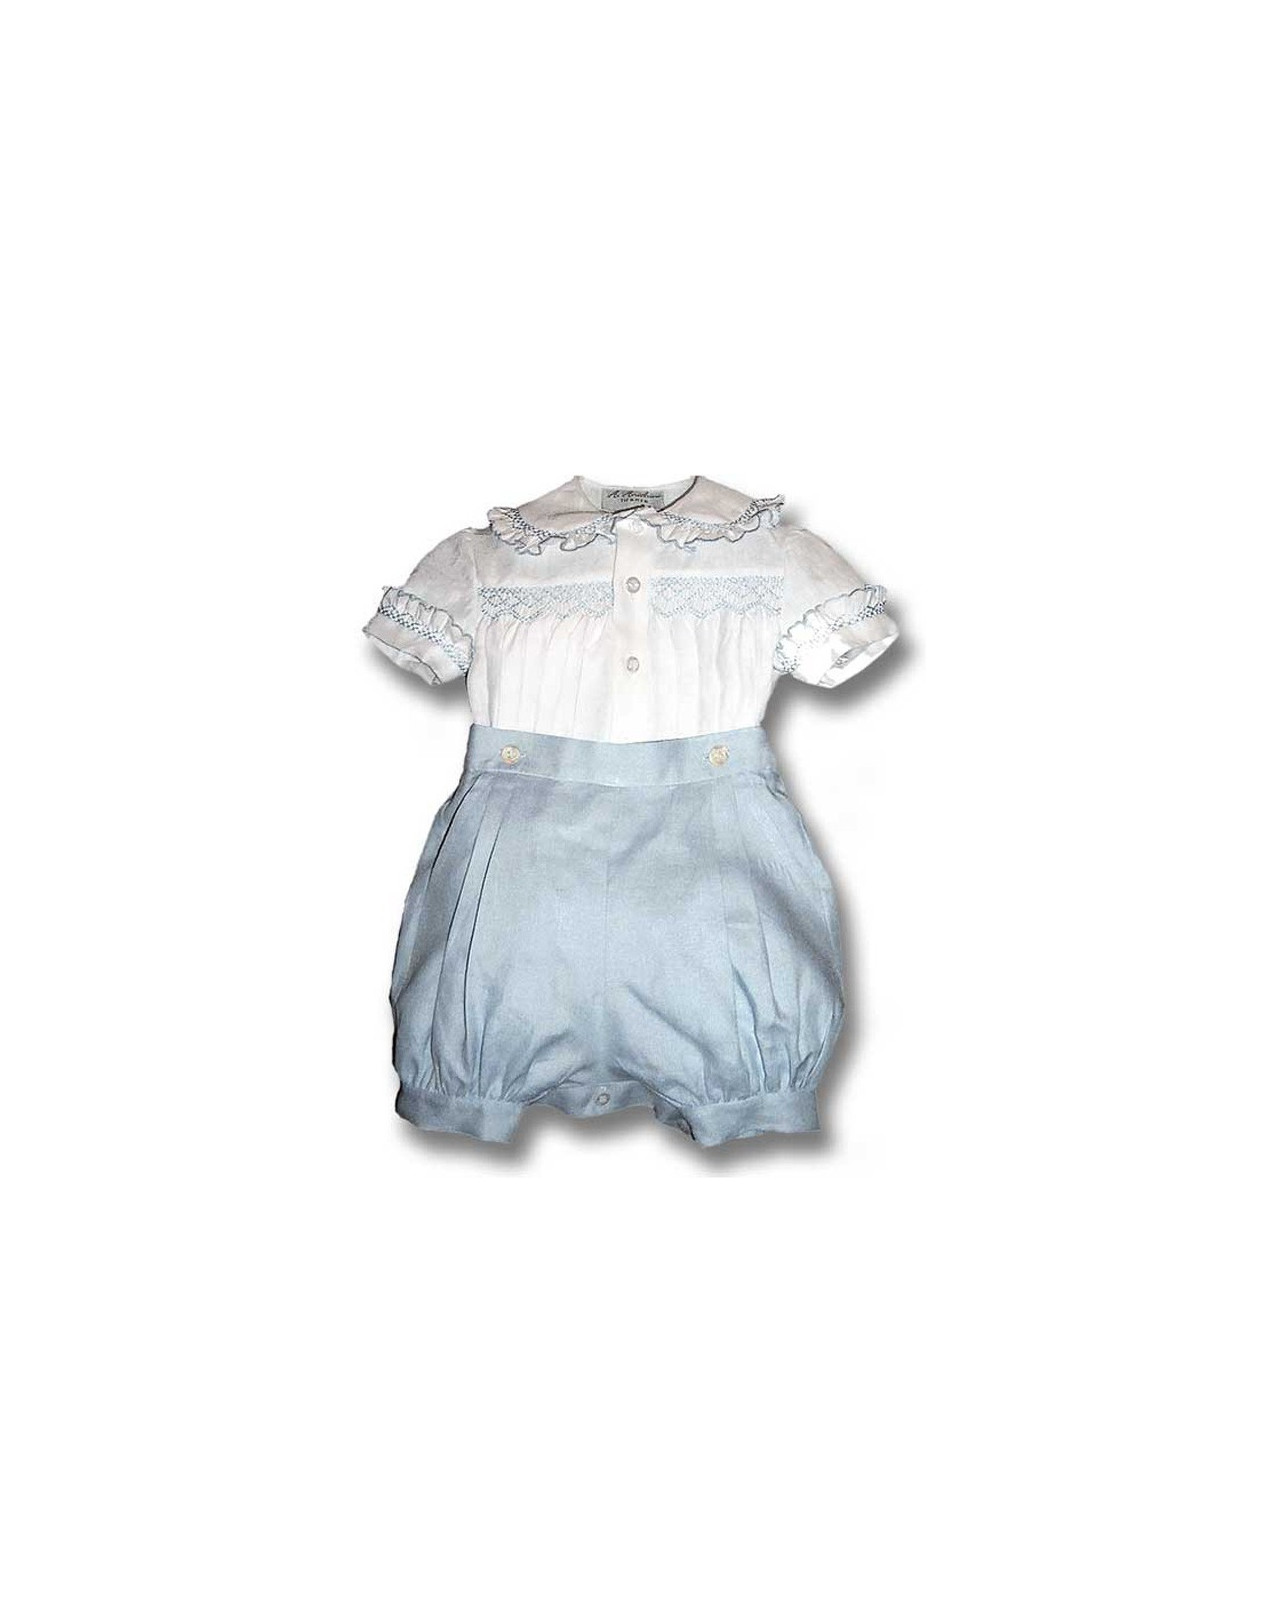 Ippolito baby boy outfit with puff pants and smocked shirt